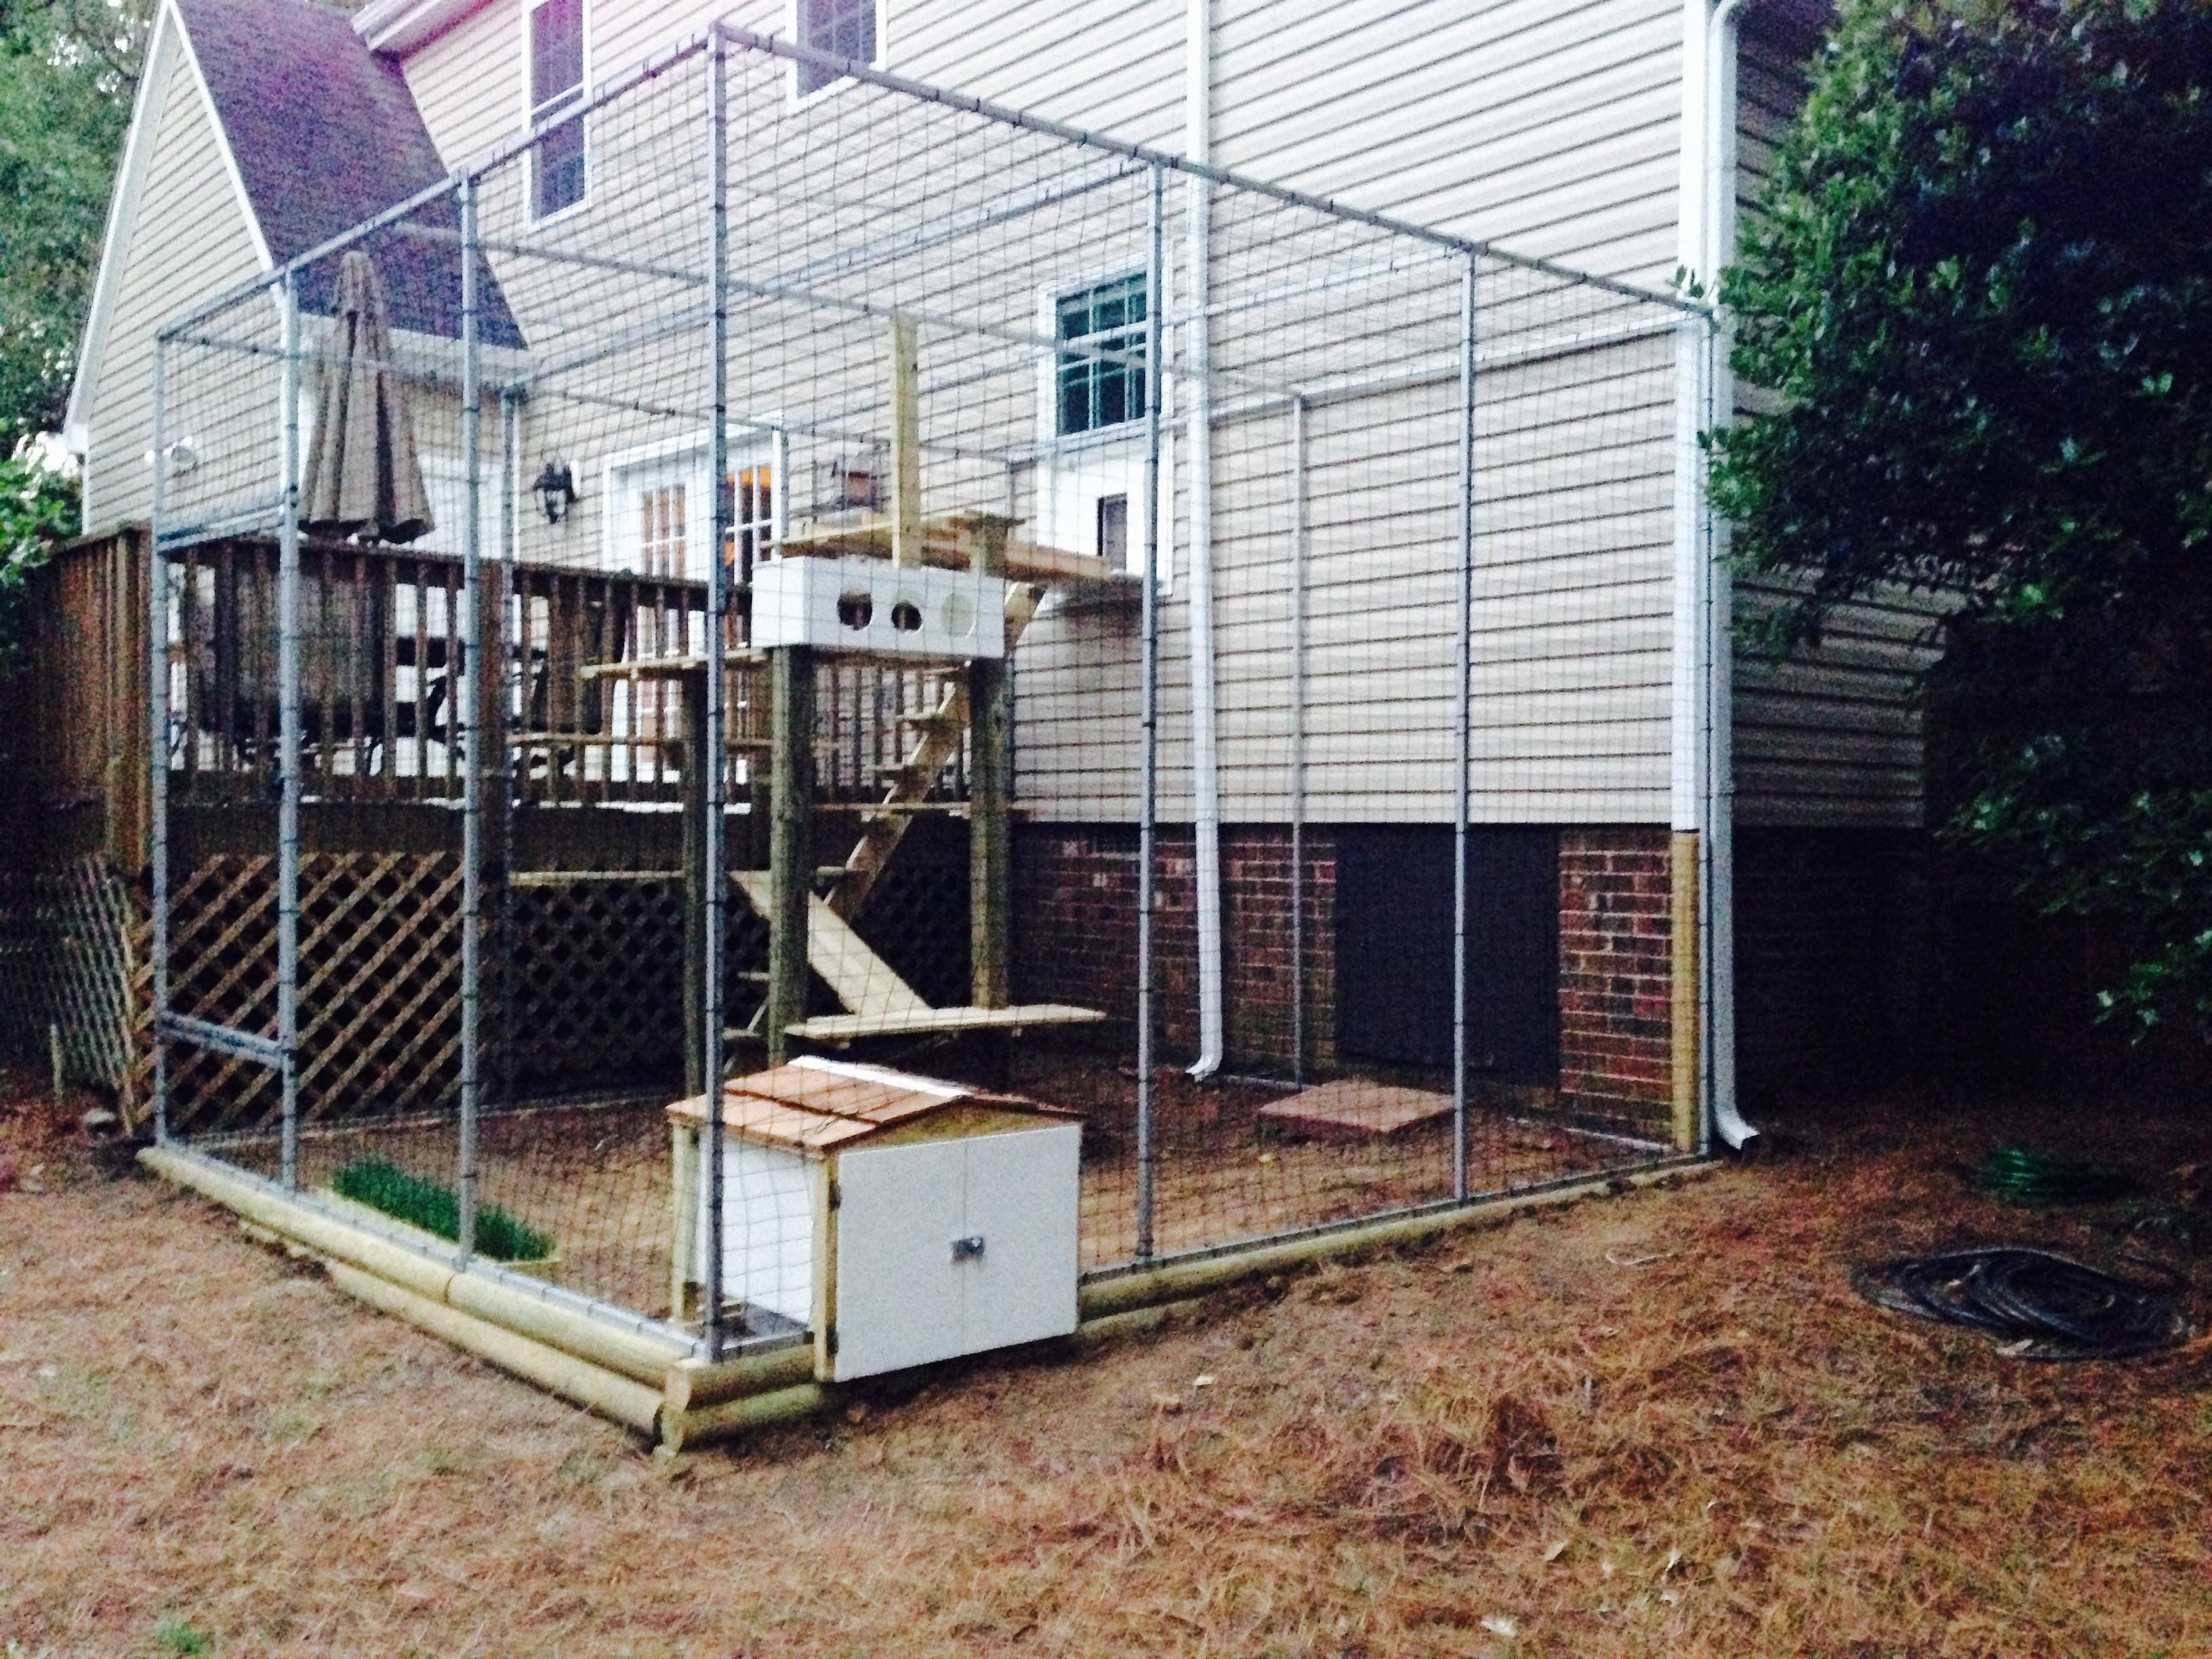 Creative Catio Featuring Outdoor Cat House Plans Ideas